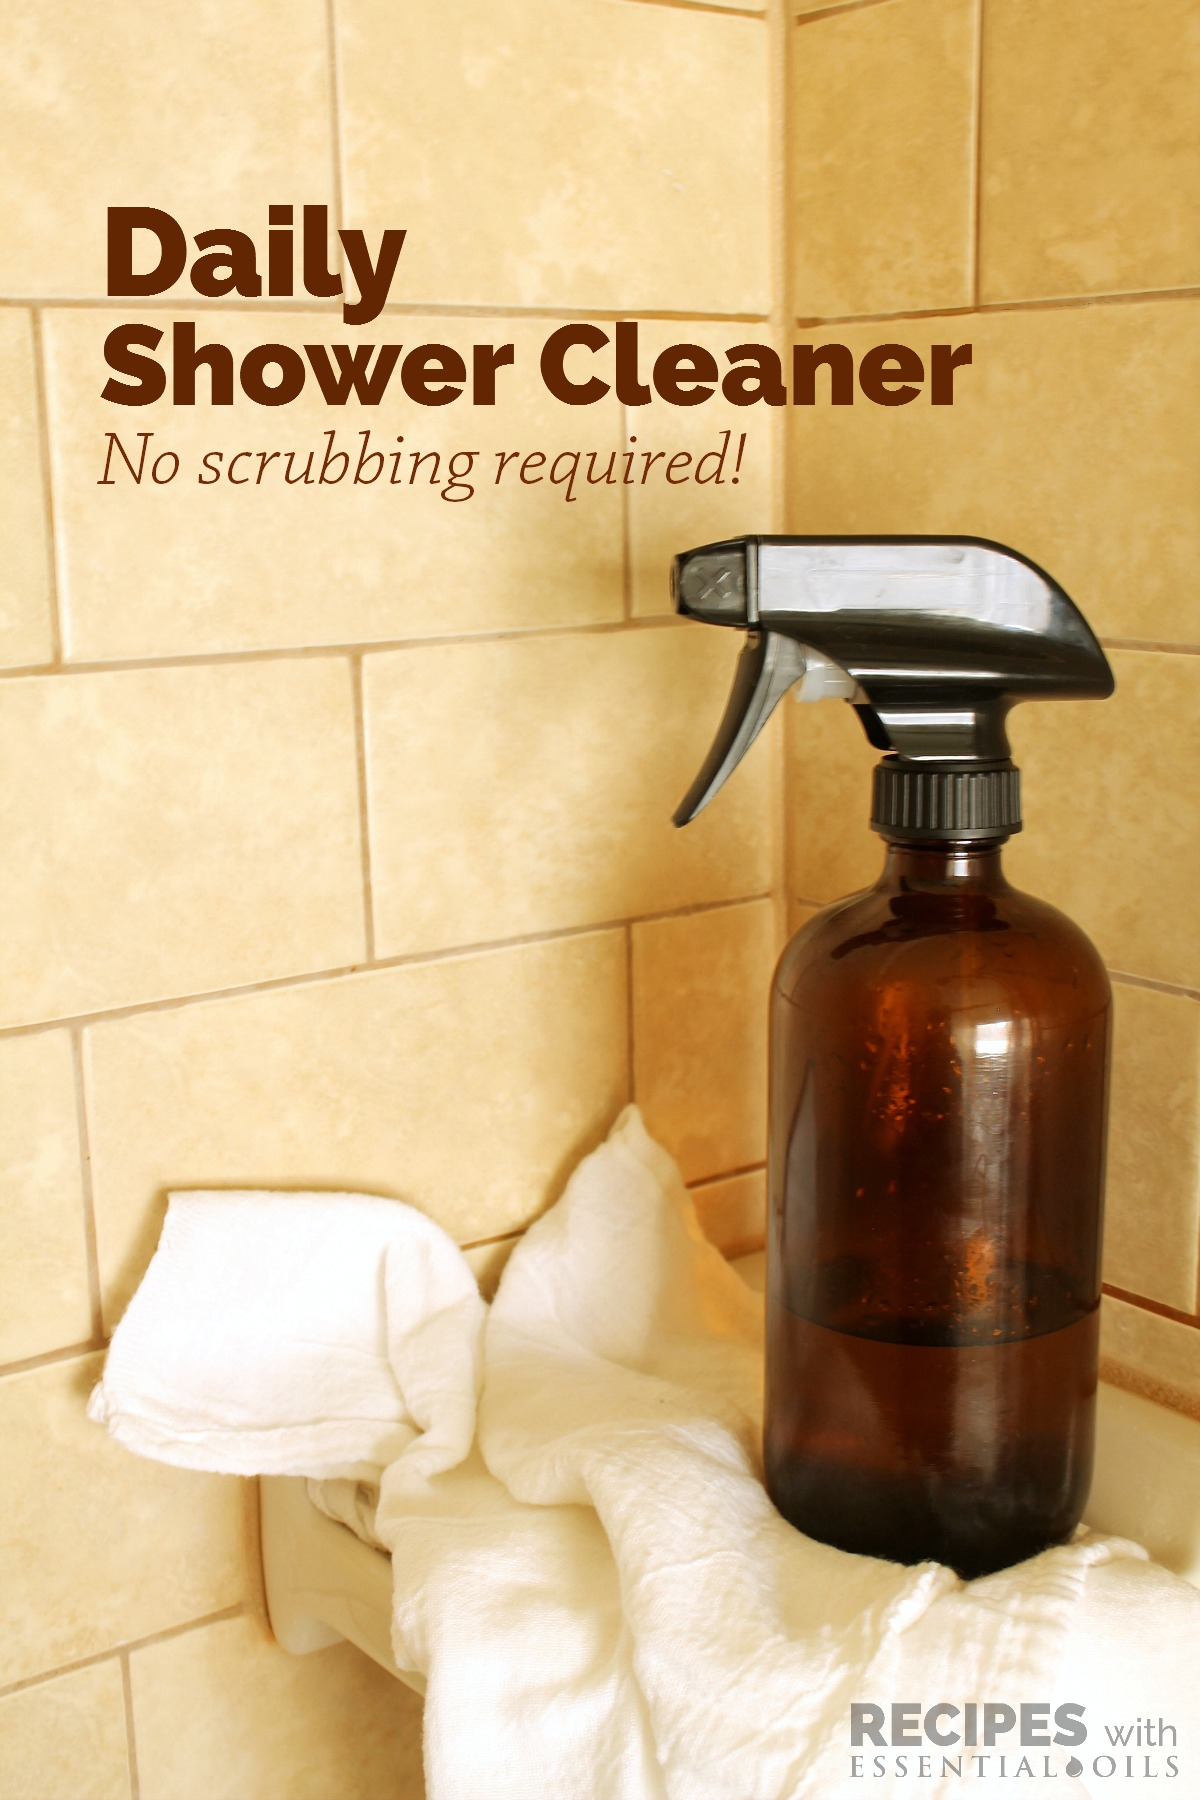 Daily Shower Cleaner - Recipes with